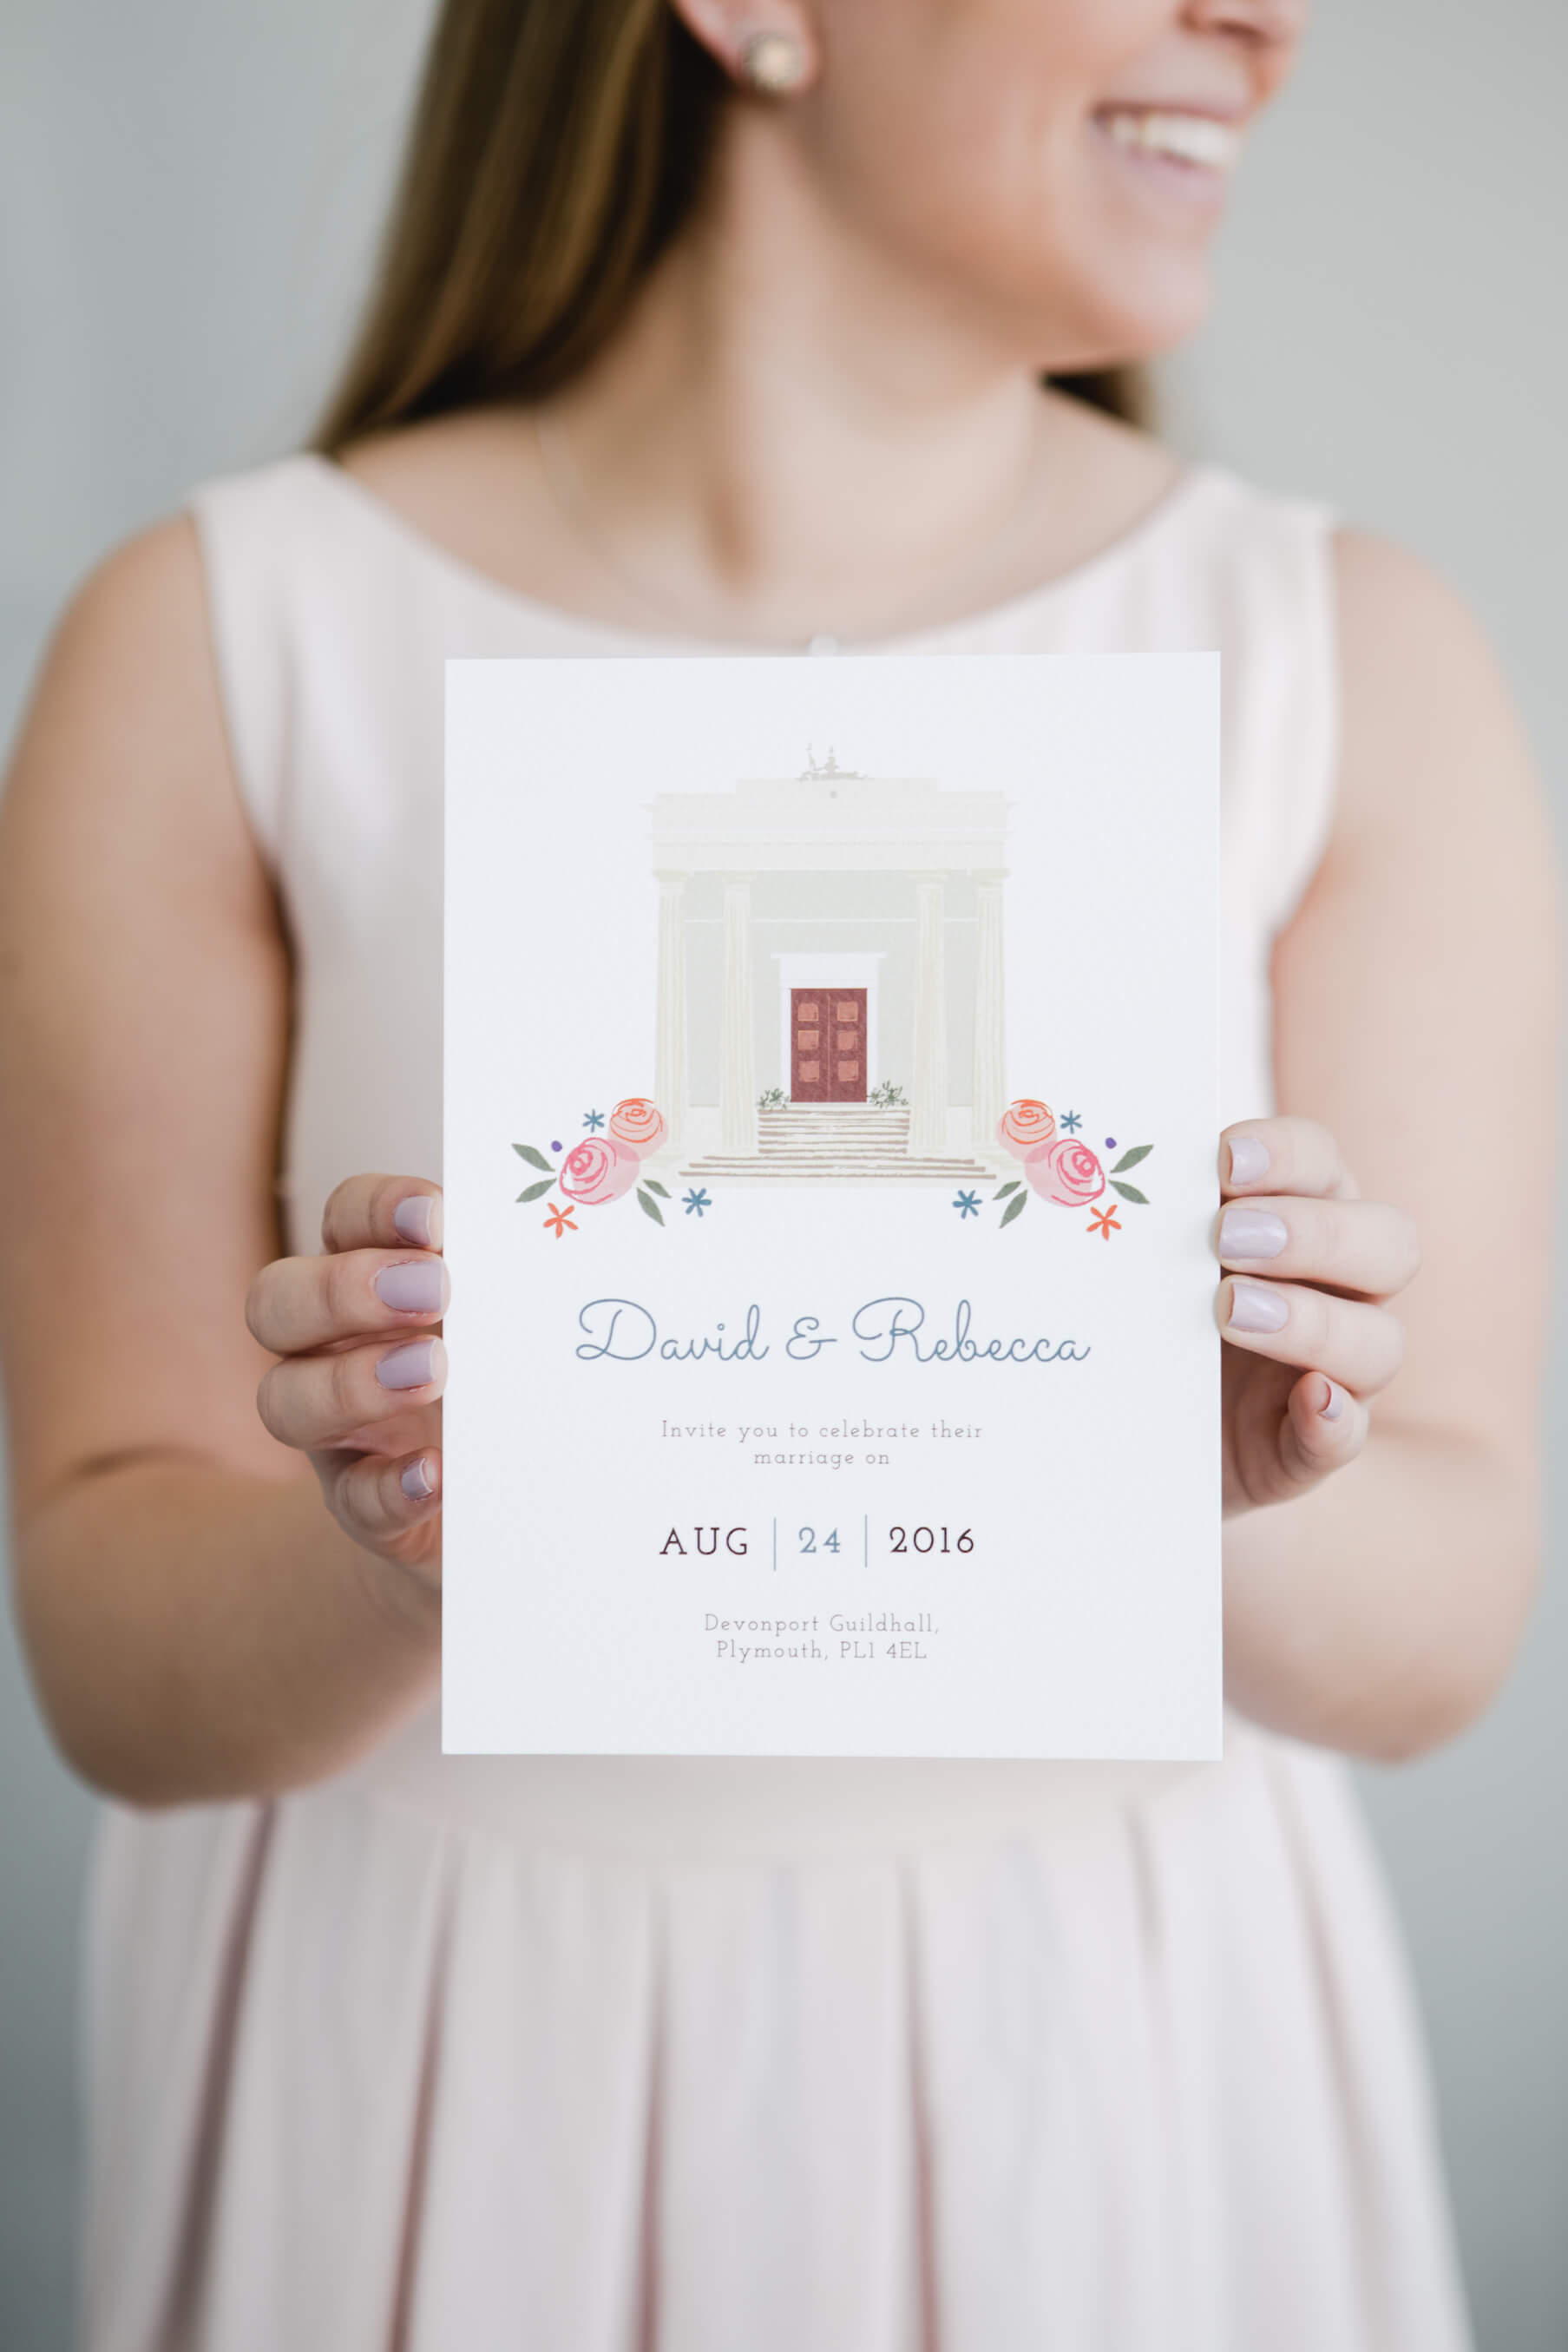 Dearly Beloved  wedding  invite . Photo by  UpArt Photography